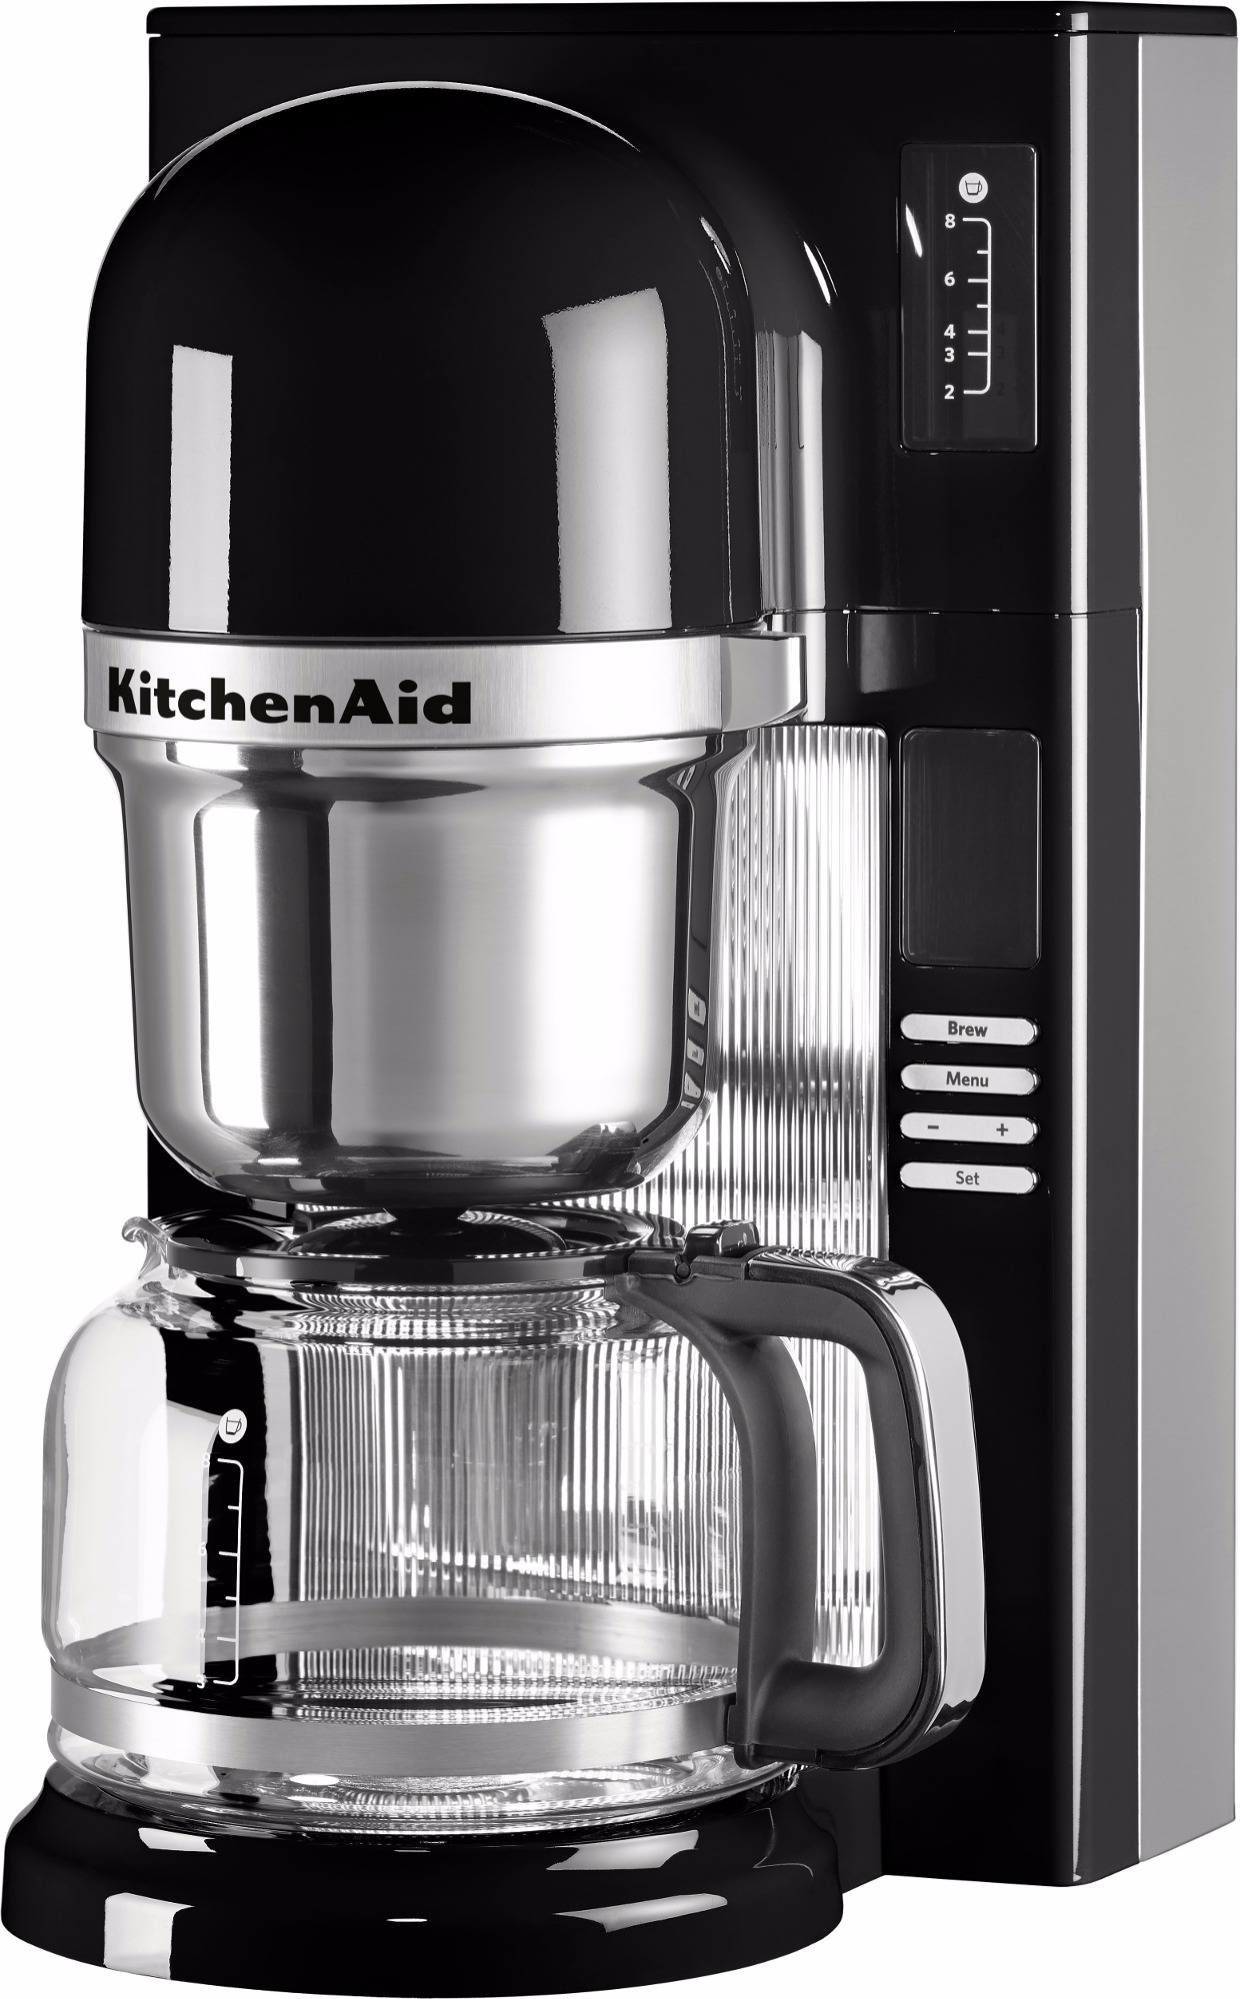 kitchenaid pour over coffee maker 125 l onyx black